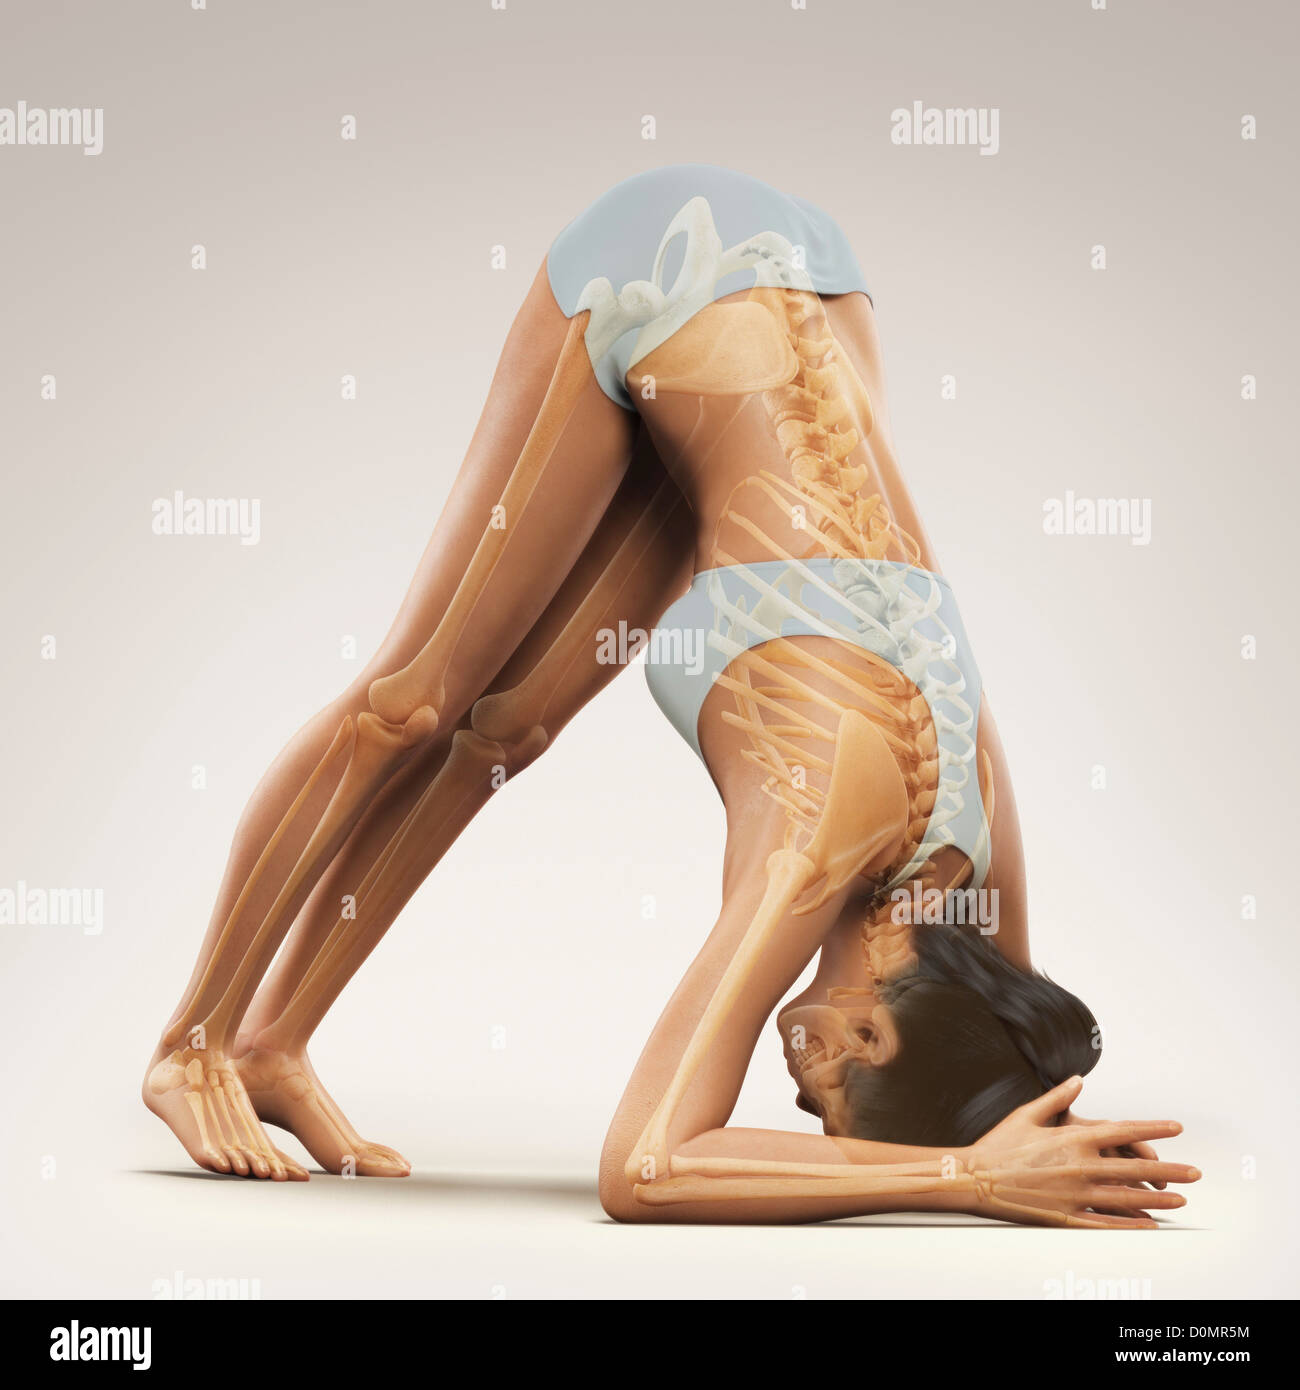 Skeleton Layered Over Female Body In Variation Dolphin Pose Showing Skeletal Alignment This Particular Yoga Posture